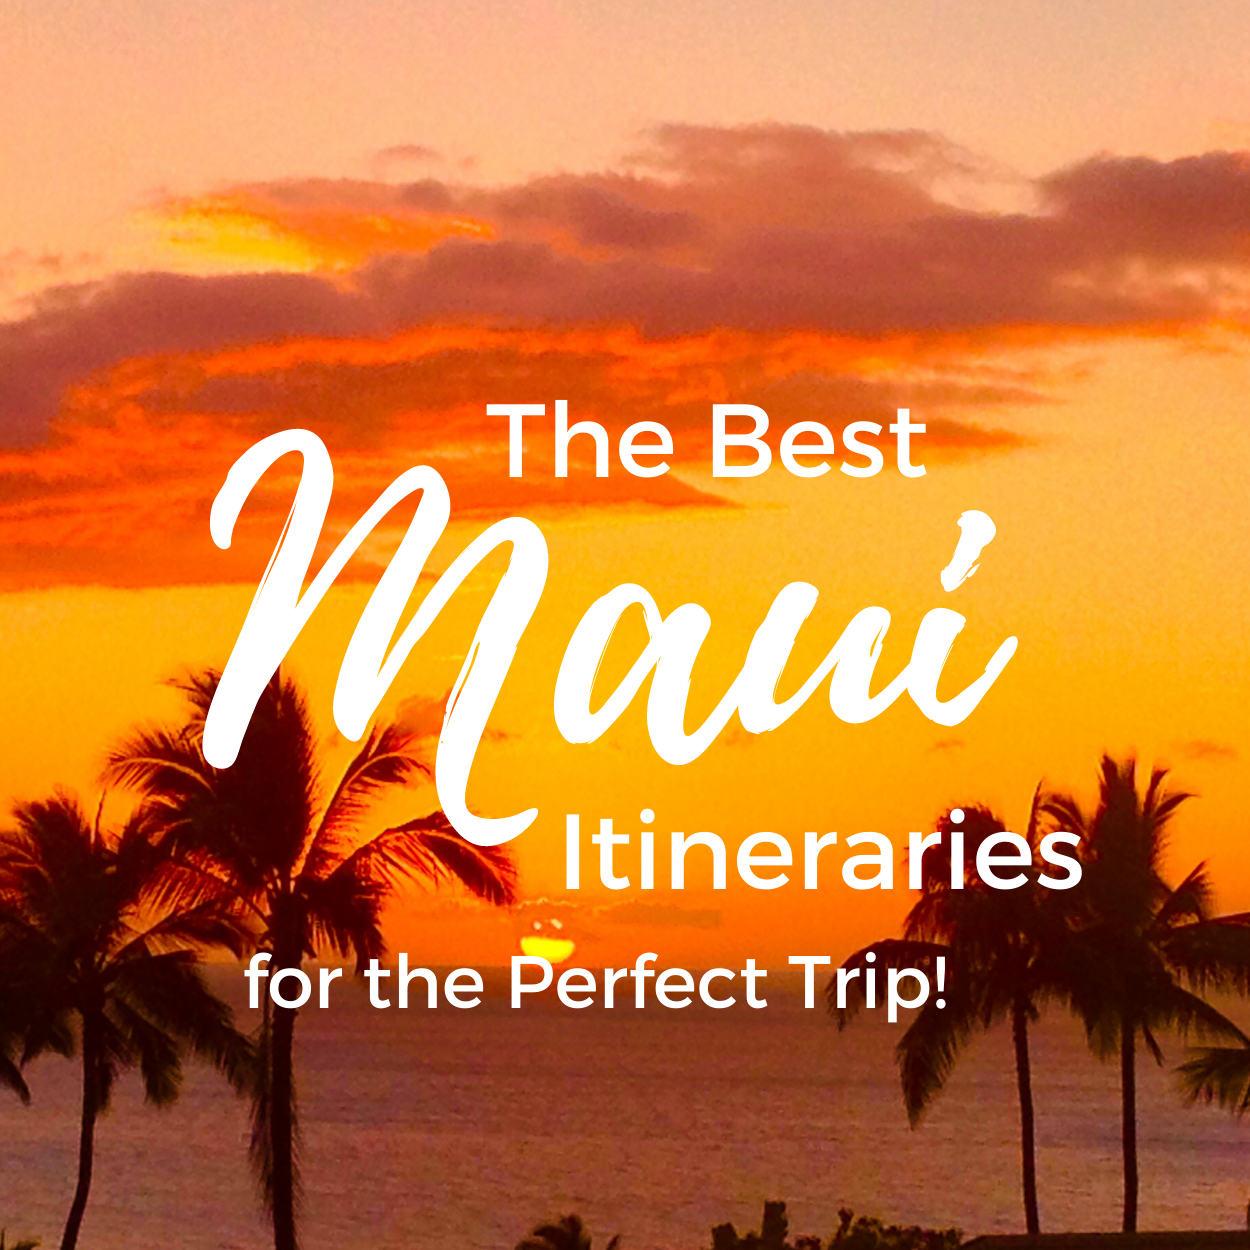 The Best Maui Itinerary